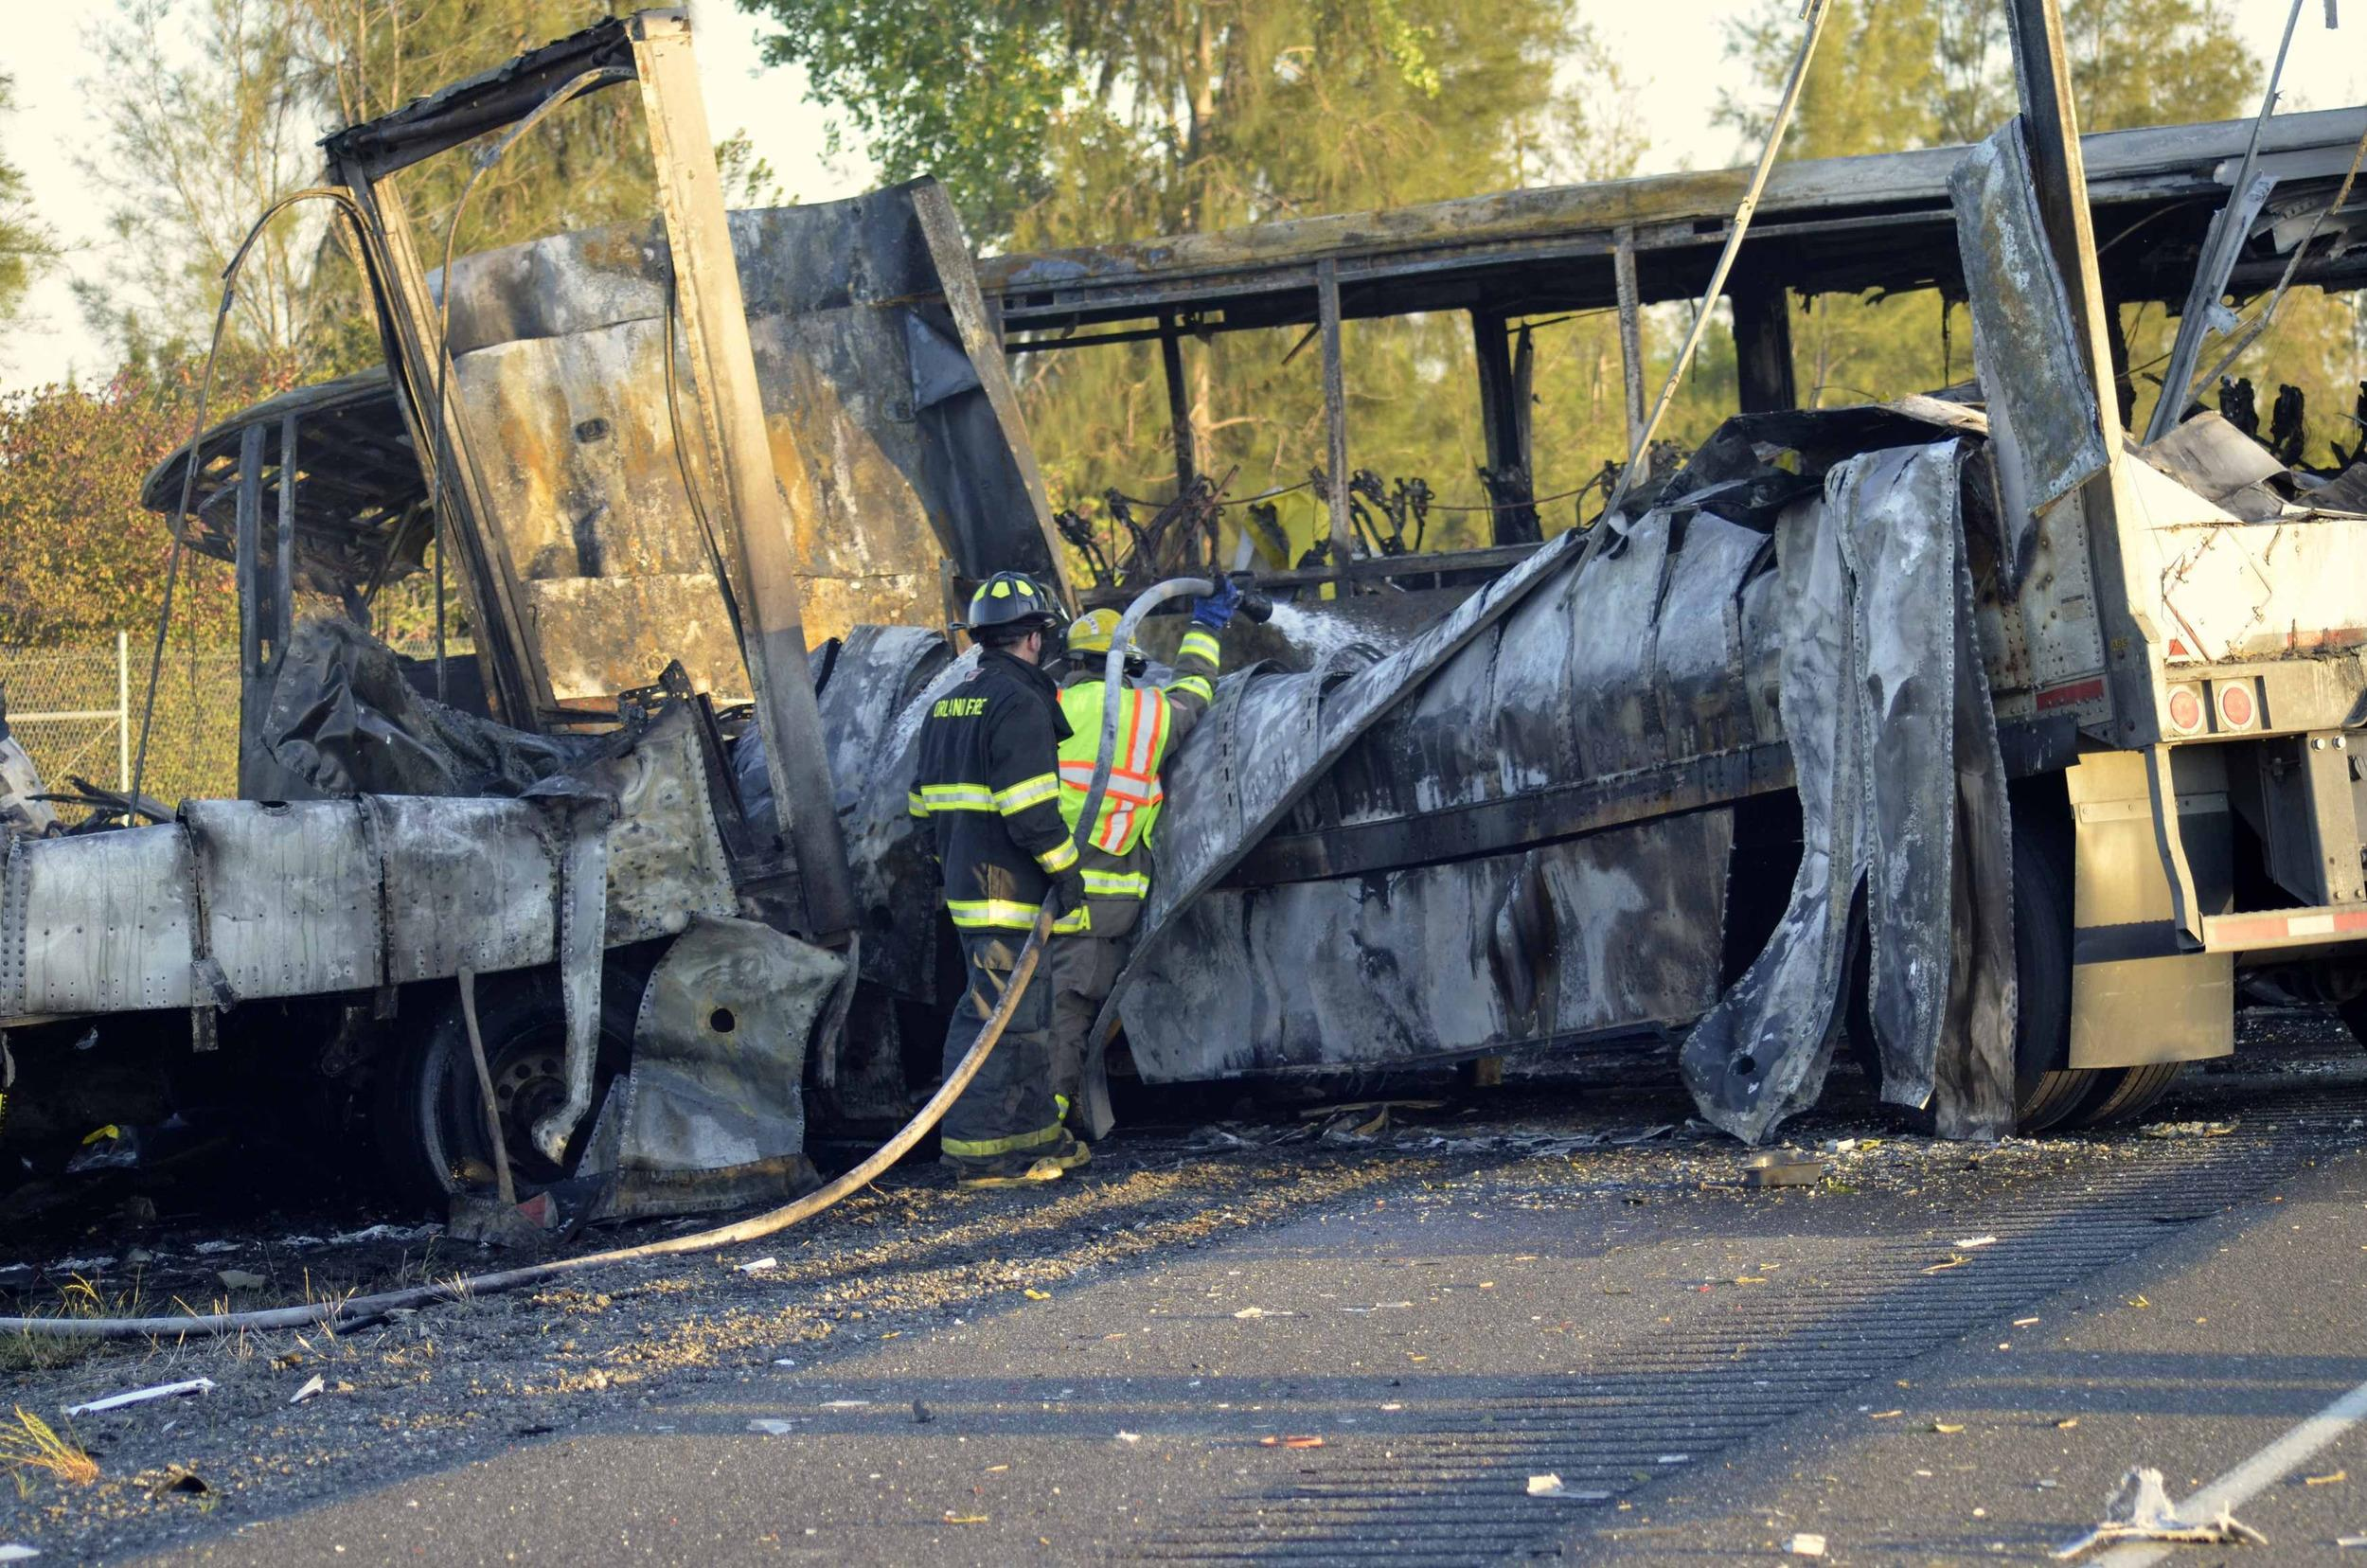 Image: Fire-fighters douse wreckage at scene of collision of tractor-trailer and tour bus on Interstate 5 near Highway 32 near Orland, California